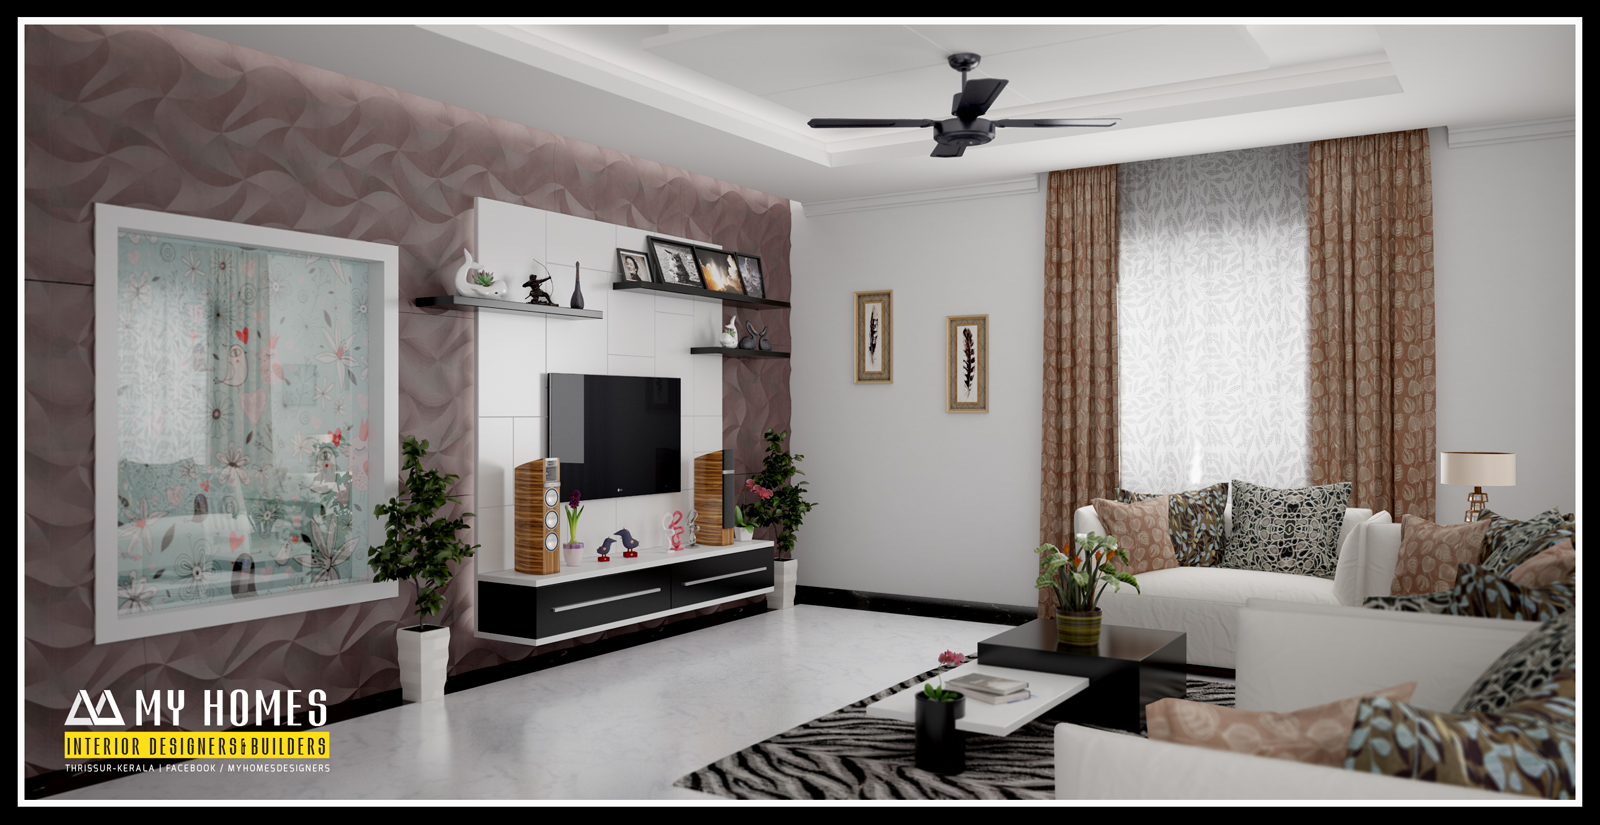 Kerala interior design ideas from designing company thrissur for House interior design ideas